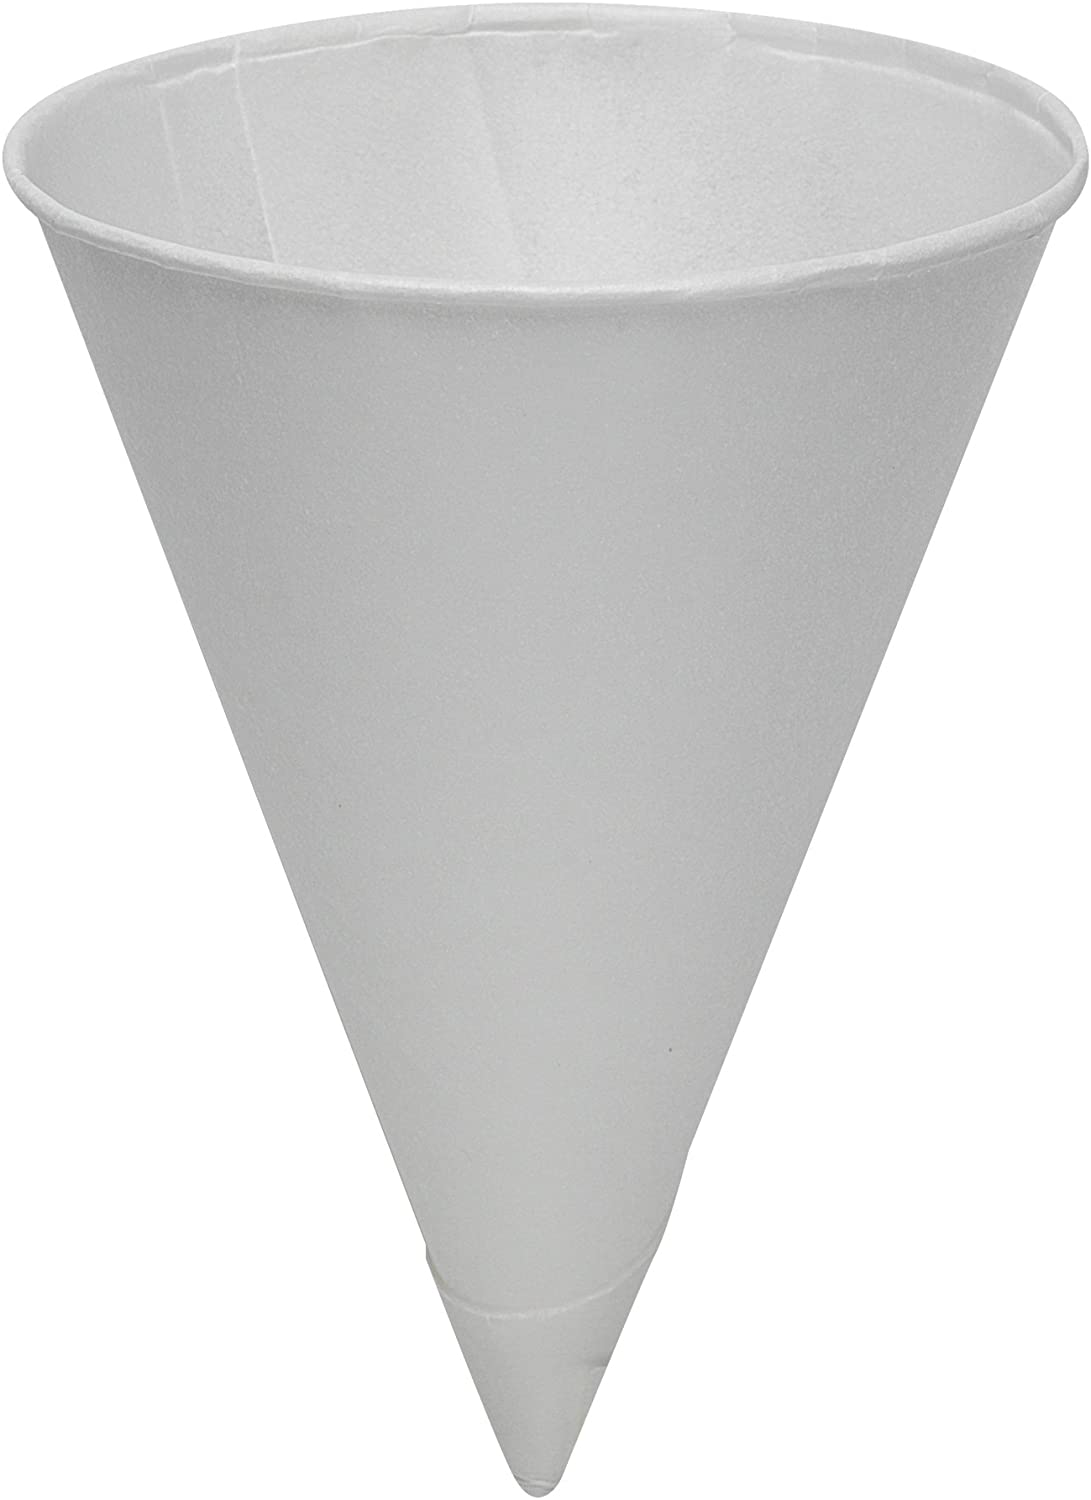 Dixie 4.5 oz.?Paper Cone Cup by GP PRO (Georgia-Pacific), White, 7045CONE, 5,000 Count (200 Cups Per Sleeve, 25 Sleeves Per Case)